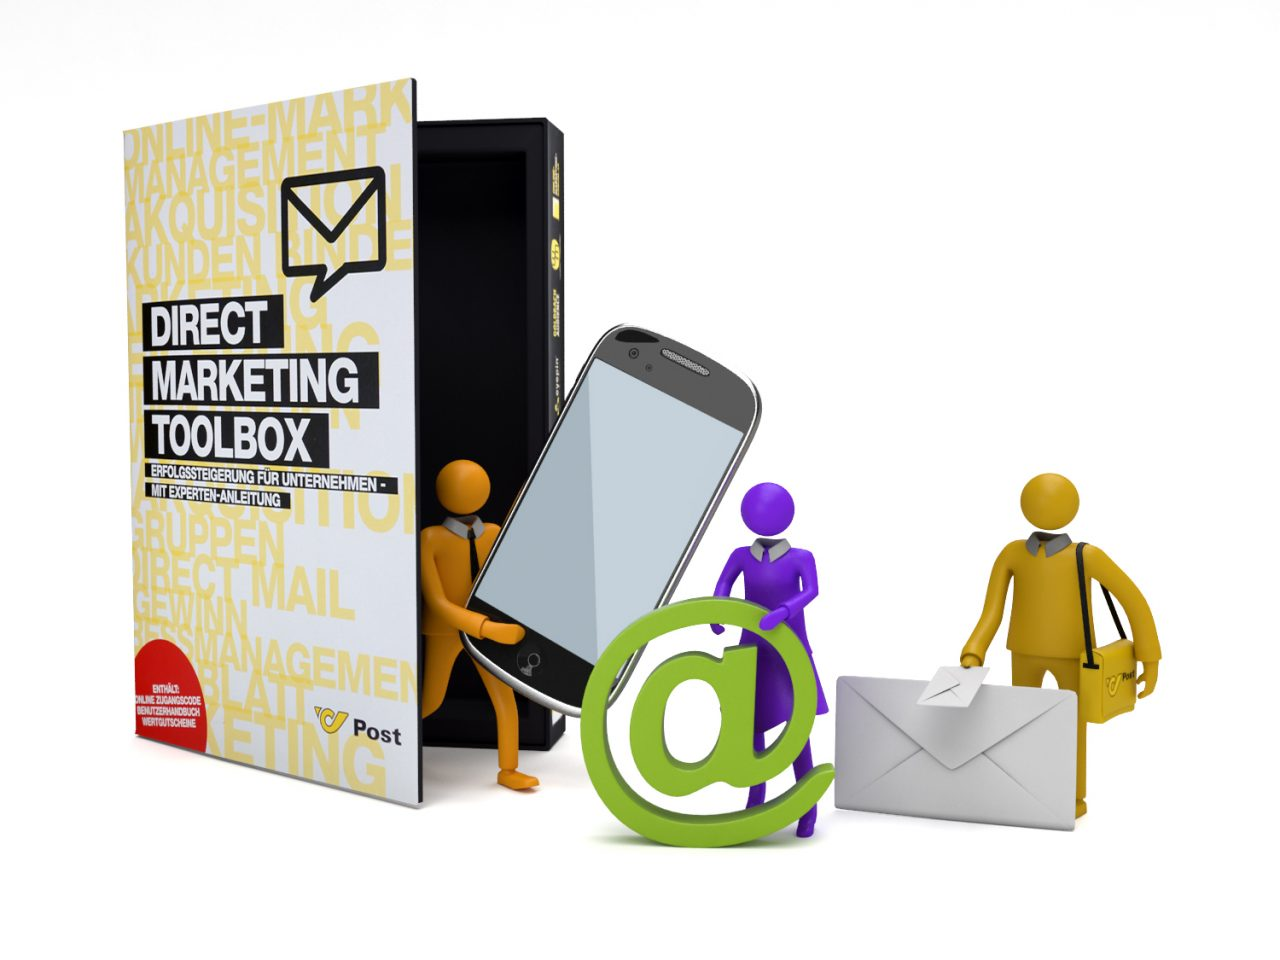 Die DIRECT MARKETING TOOLBOX vier Wochen lang gratis testen